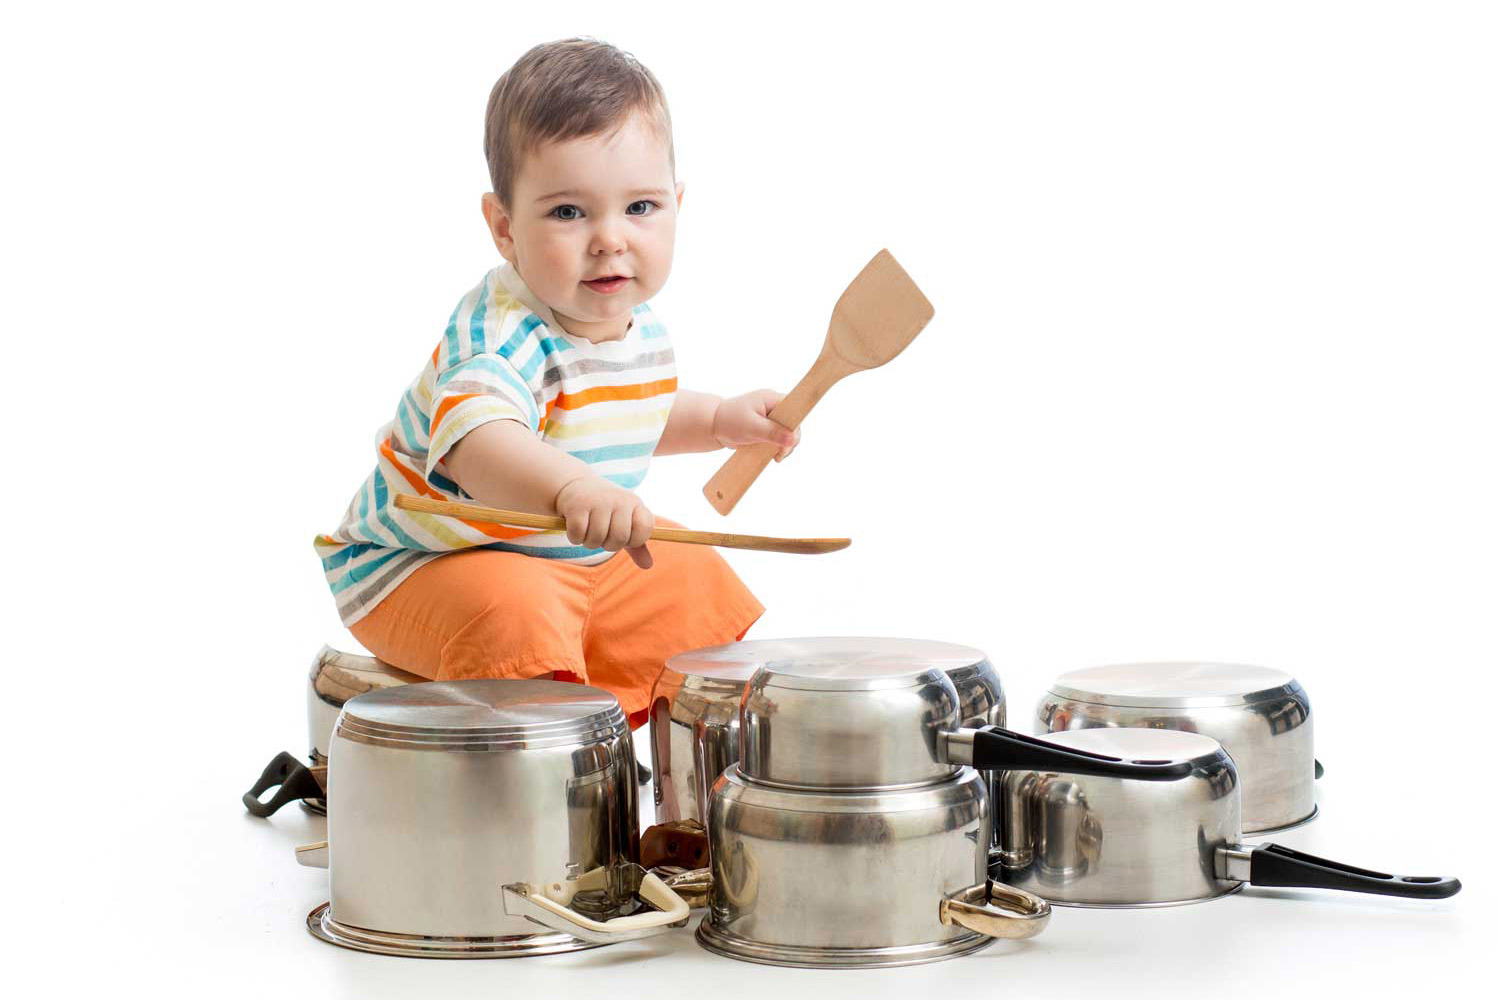 nanny/housekeepers kid plays with pots and pans